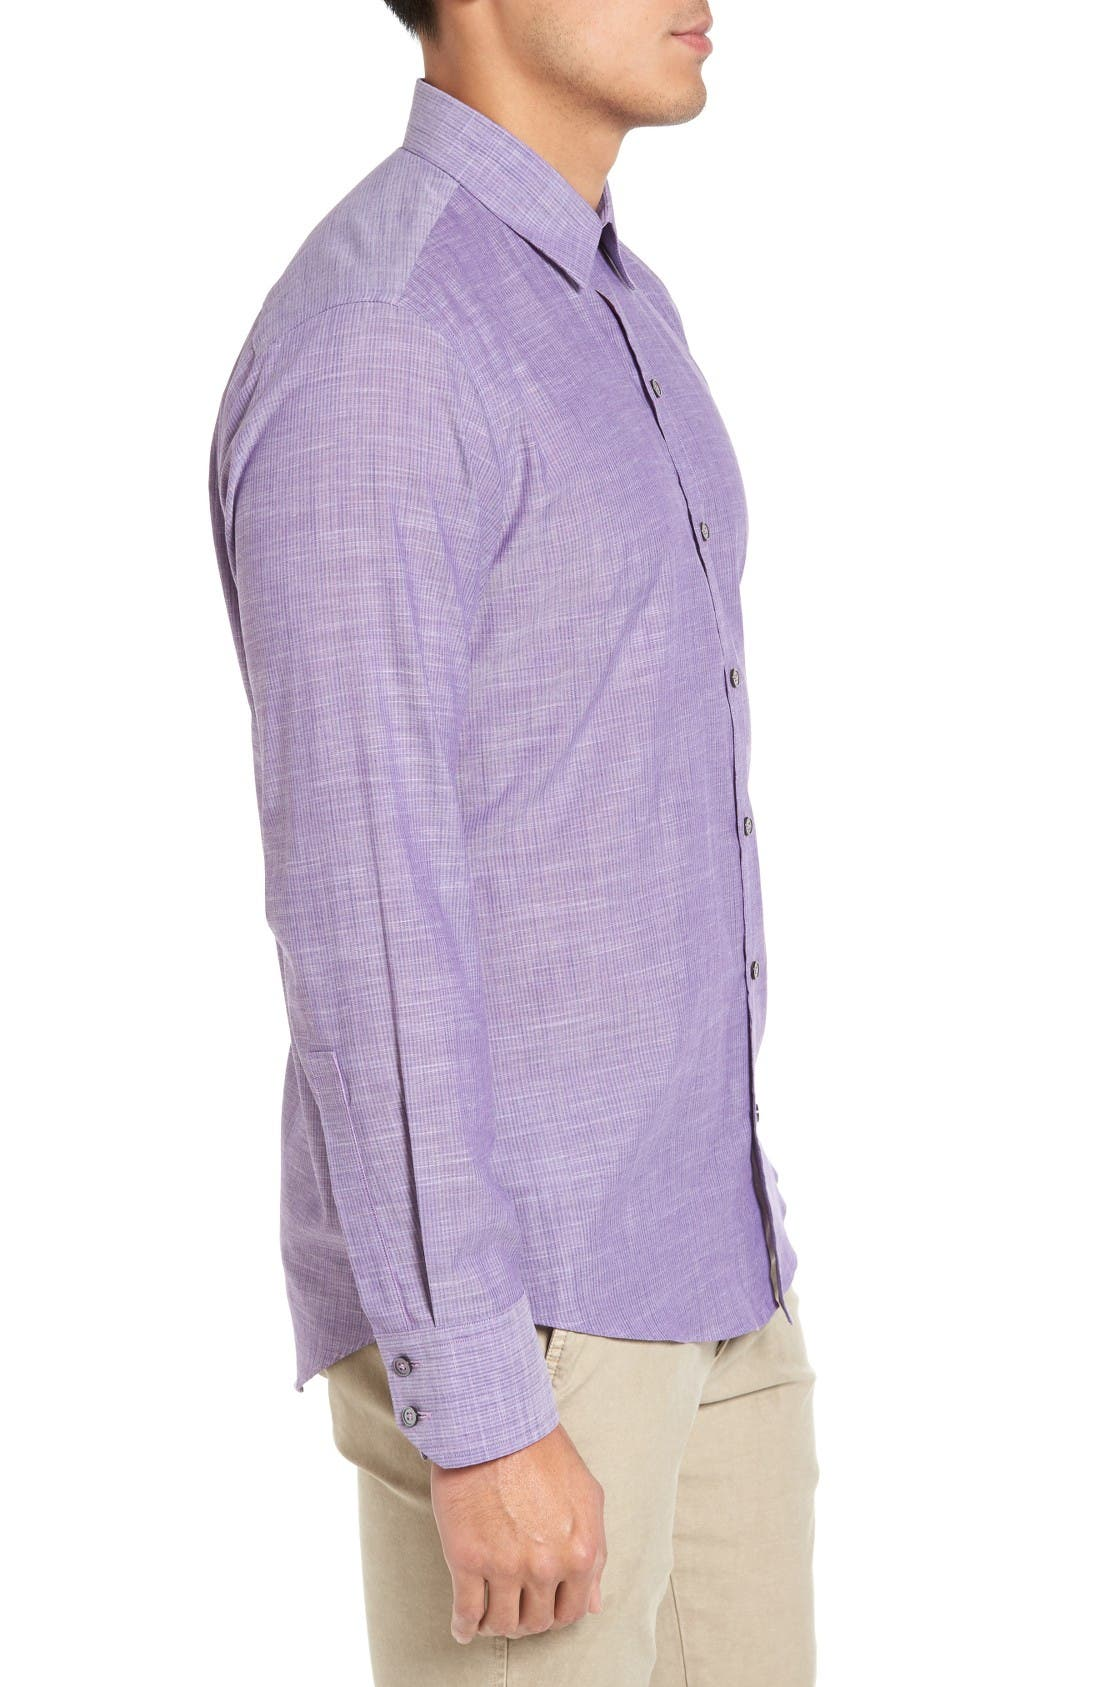 Snower Slim Fit Sport Shirt,                             Alternate thumbnail 3, color,                             Purple